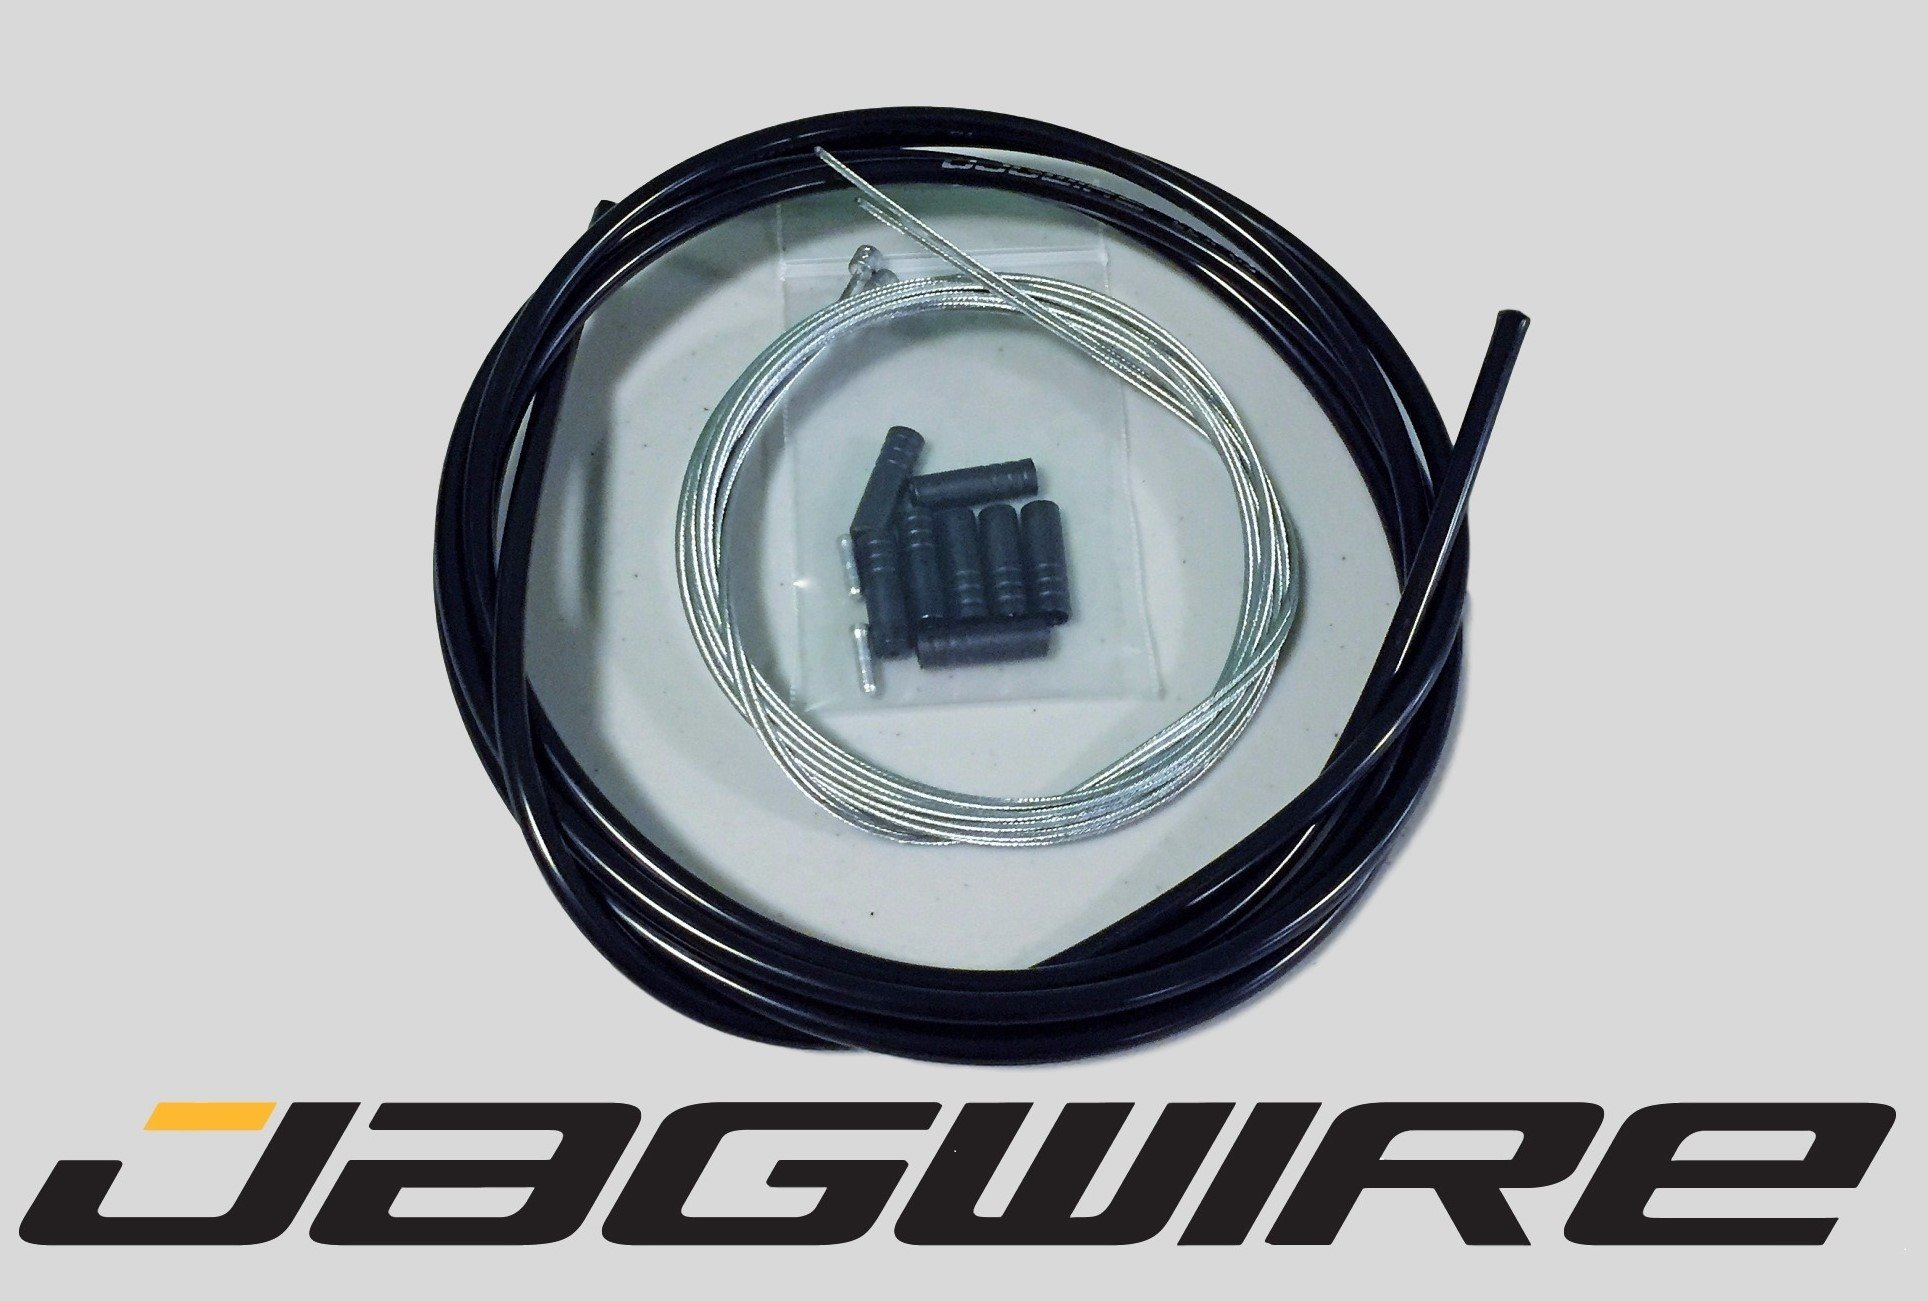 JAGWIRE MOUNTAIN SHOP KIT - Shifter / Derailleur Cable & Housing Kit - SRAM/Shimano MTB by Jagwire